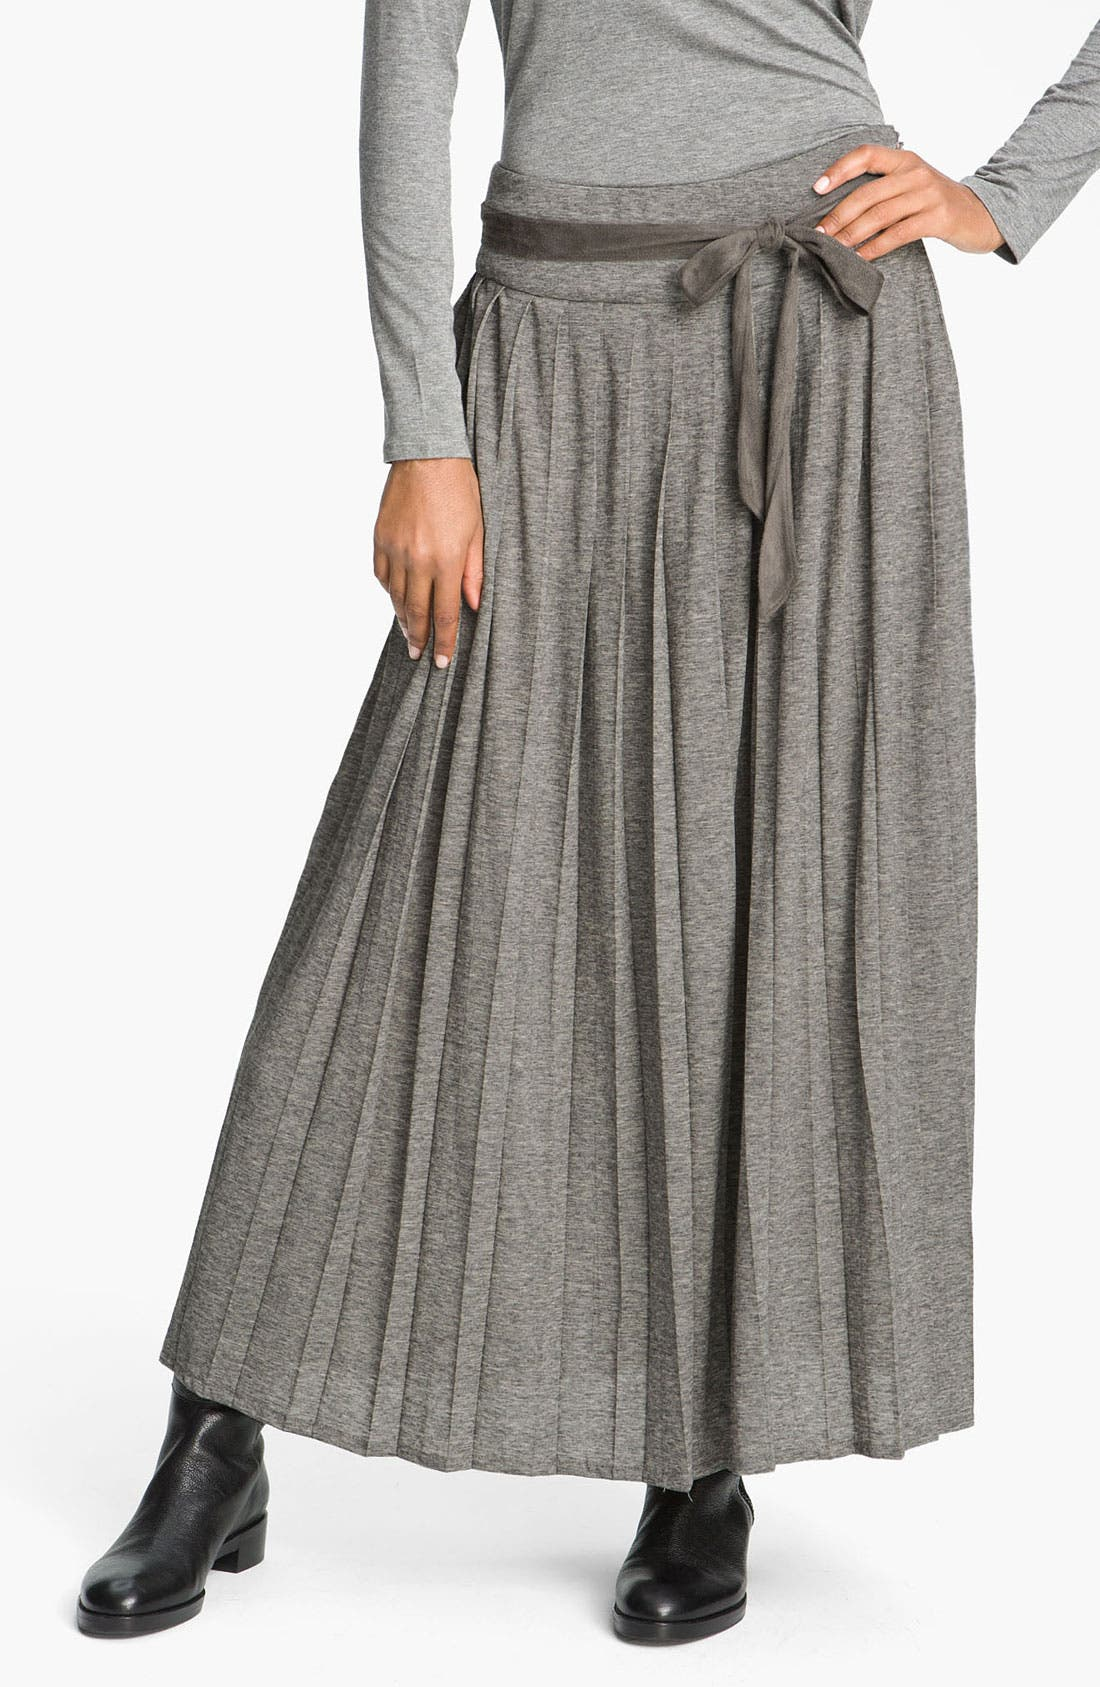 Alternate Image 1 Selected - Weekend Max Mara 'Amburgo' Jersey Skirt